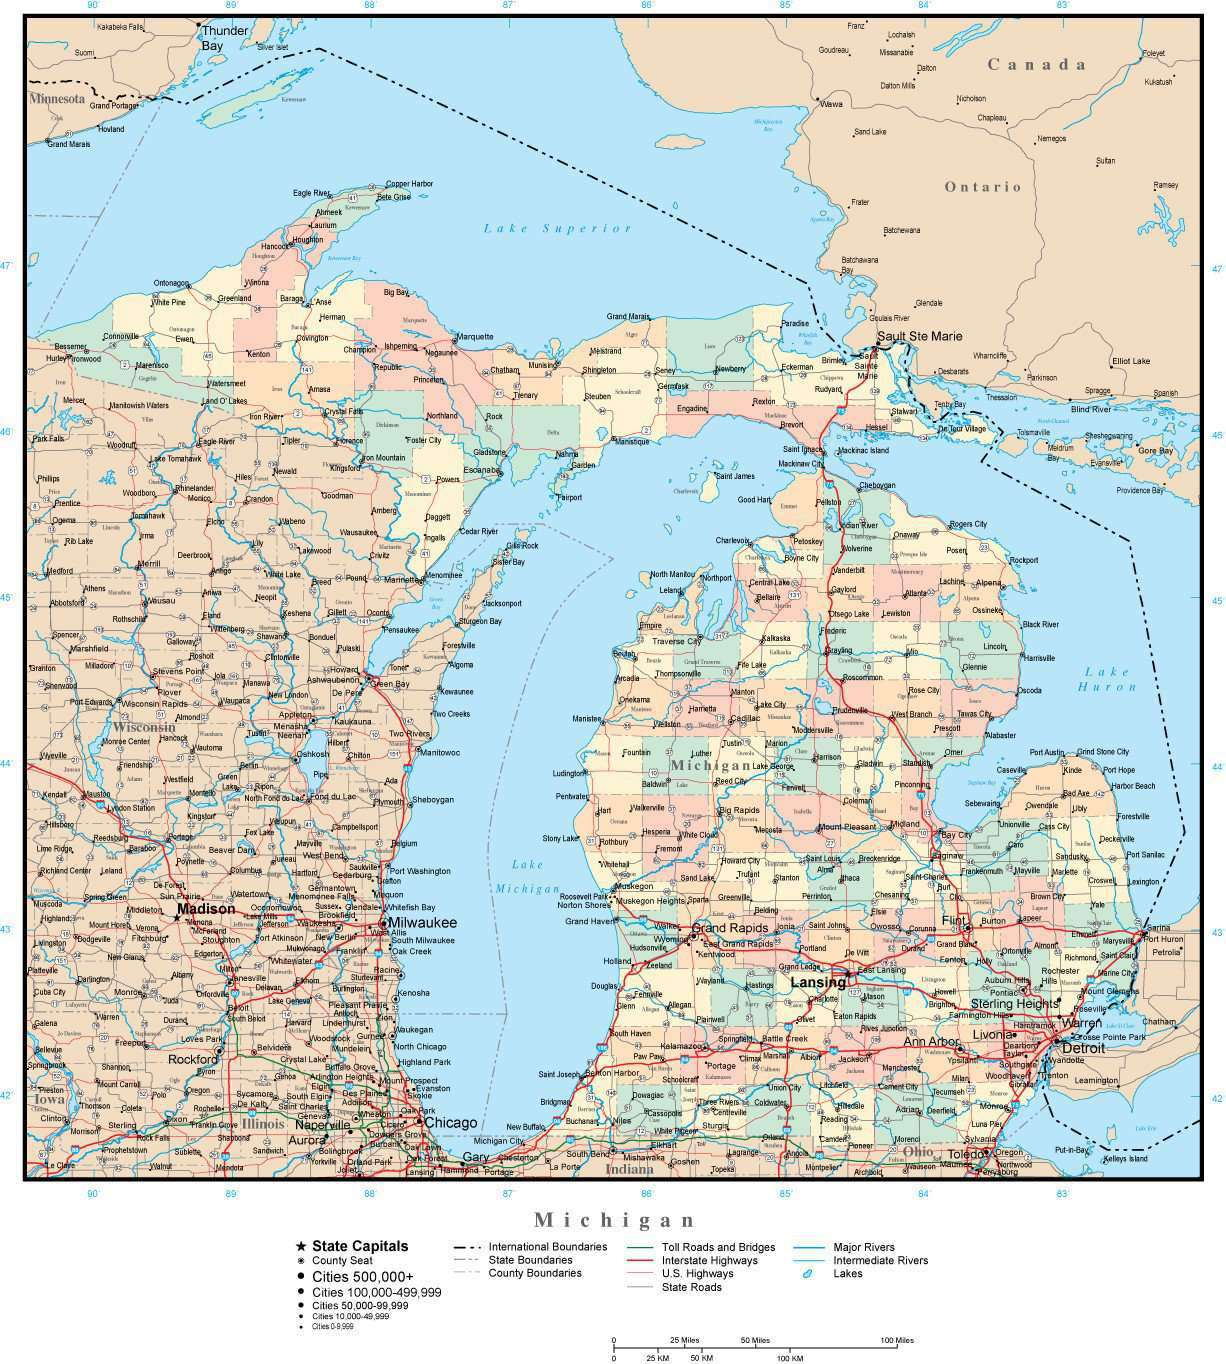 Michigan Adobe Illustrator Map With Counties Cities County Seats